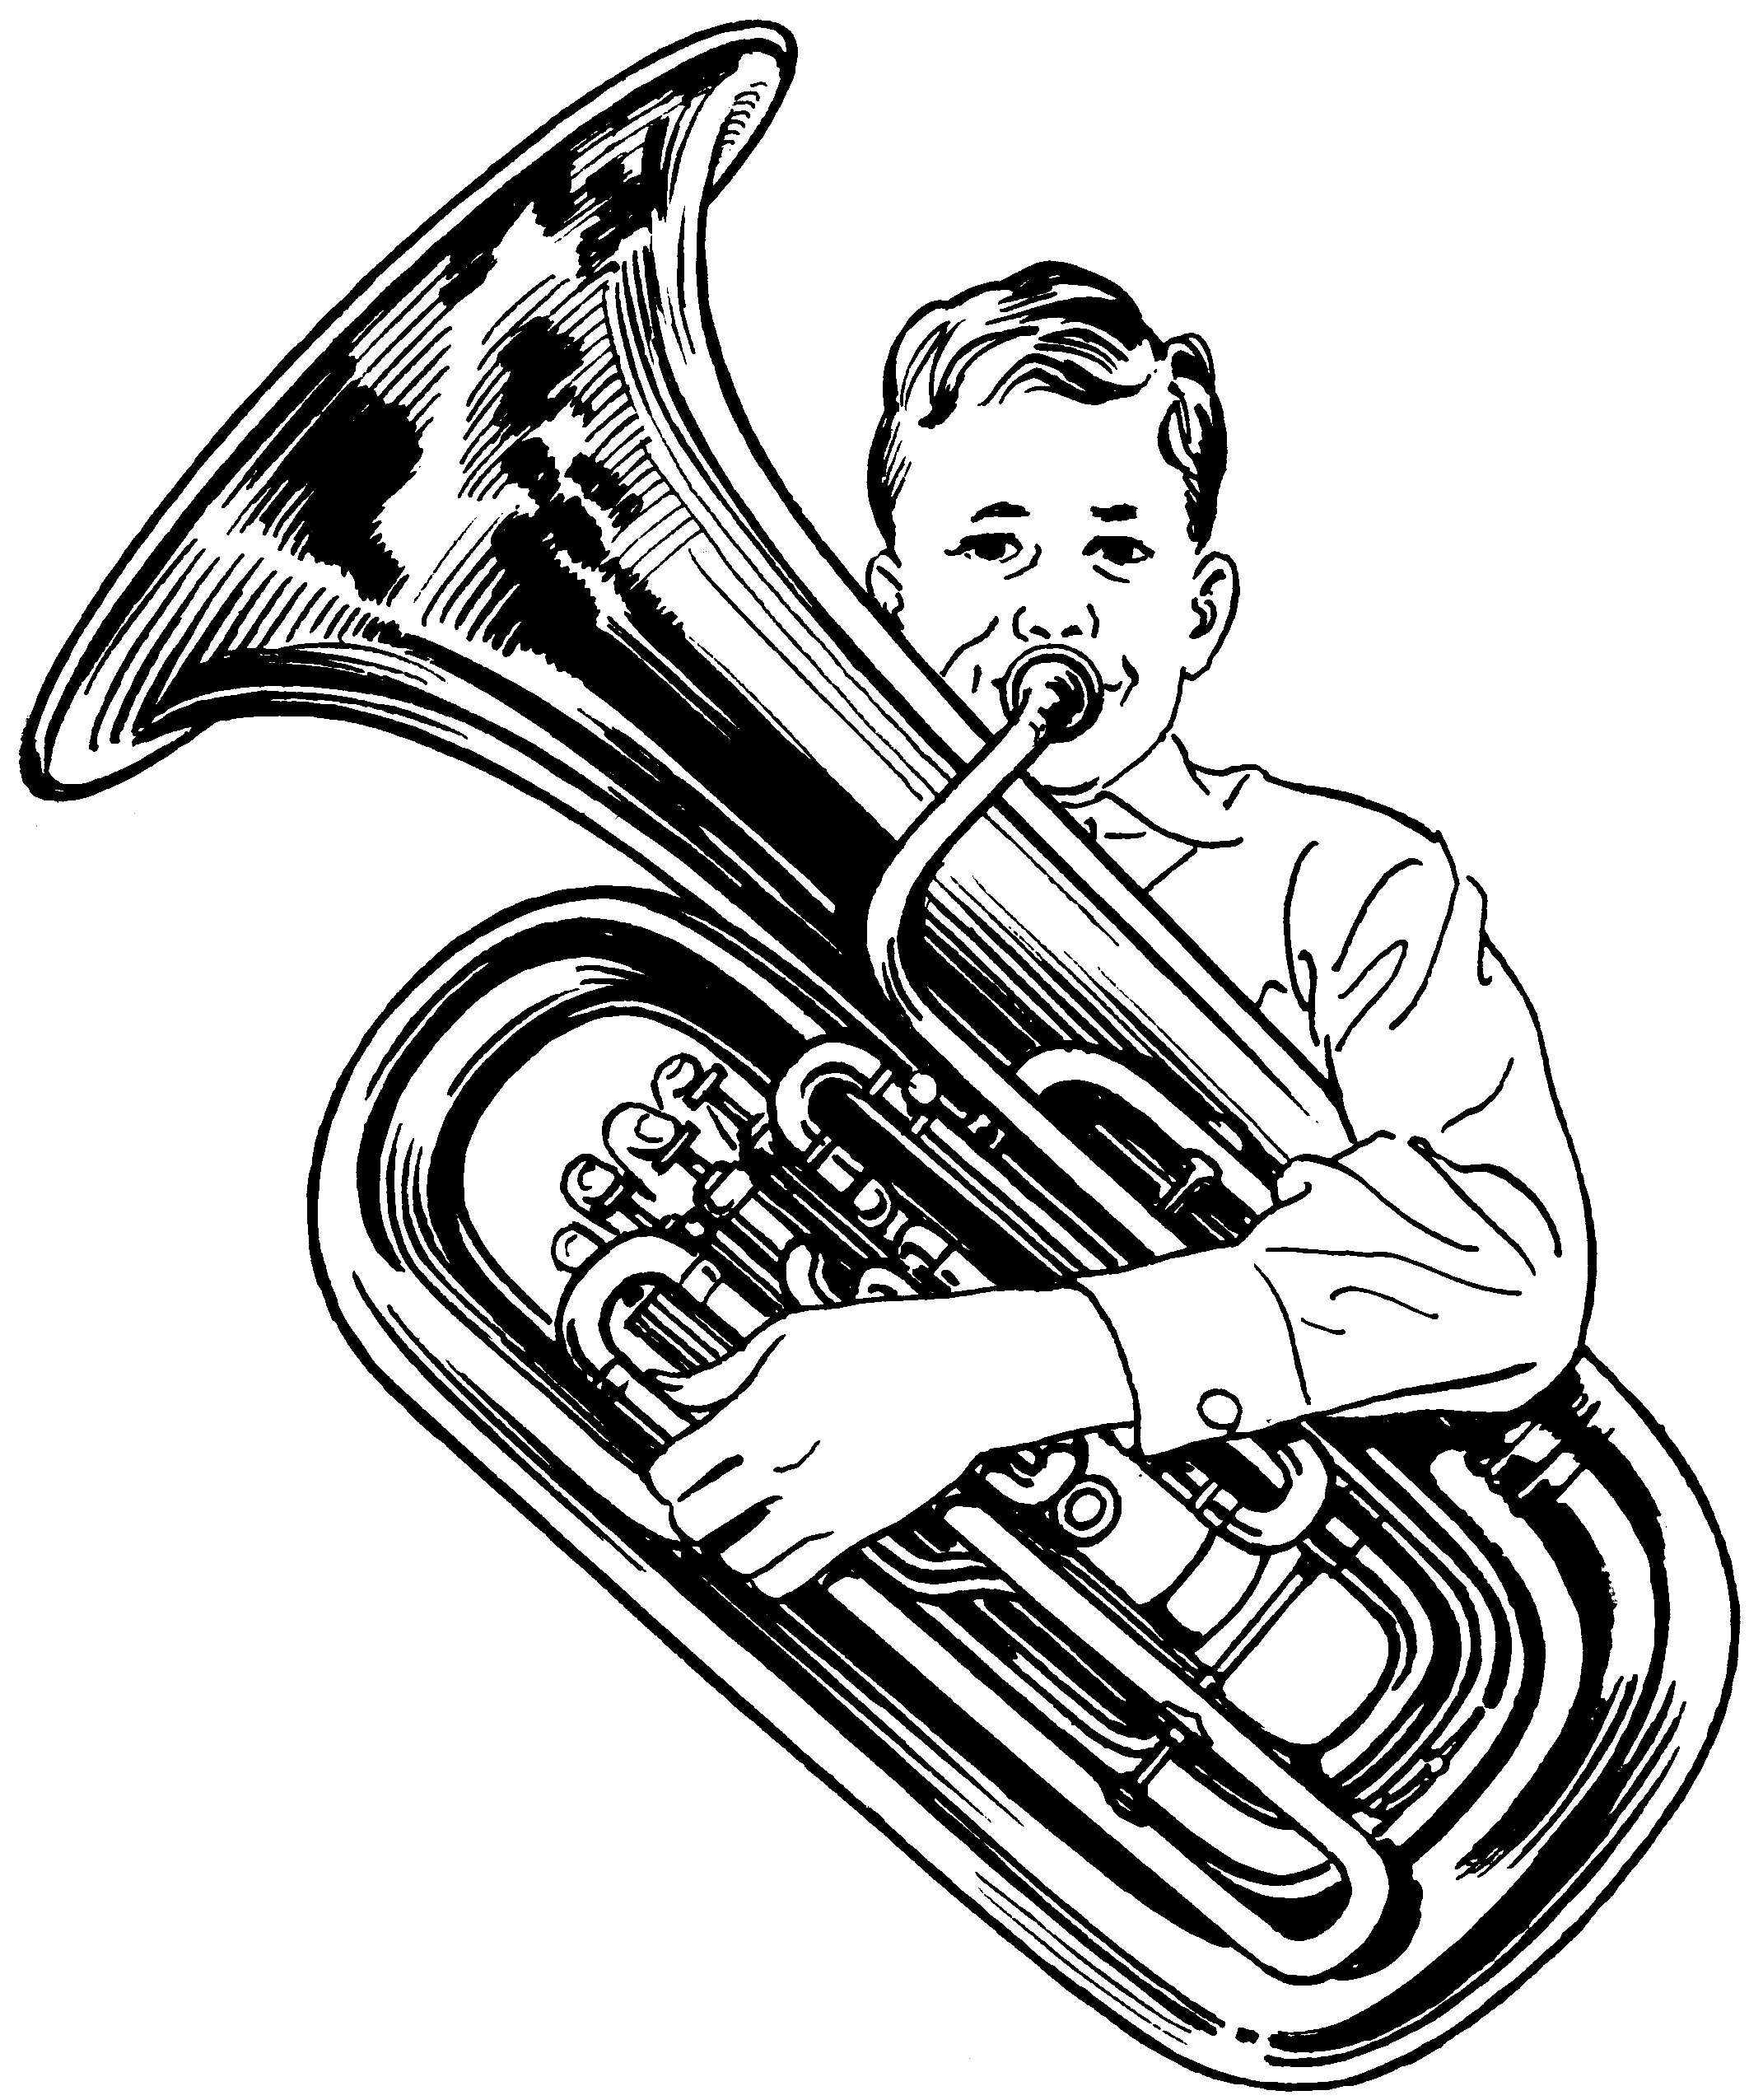 Sousaphone drawing pencil. Tuba google zoeken music